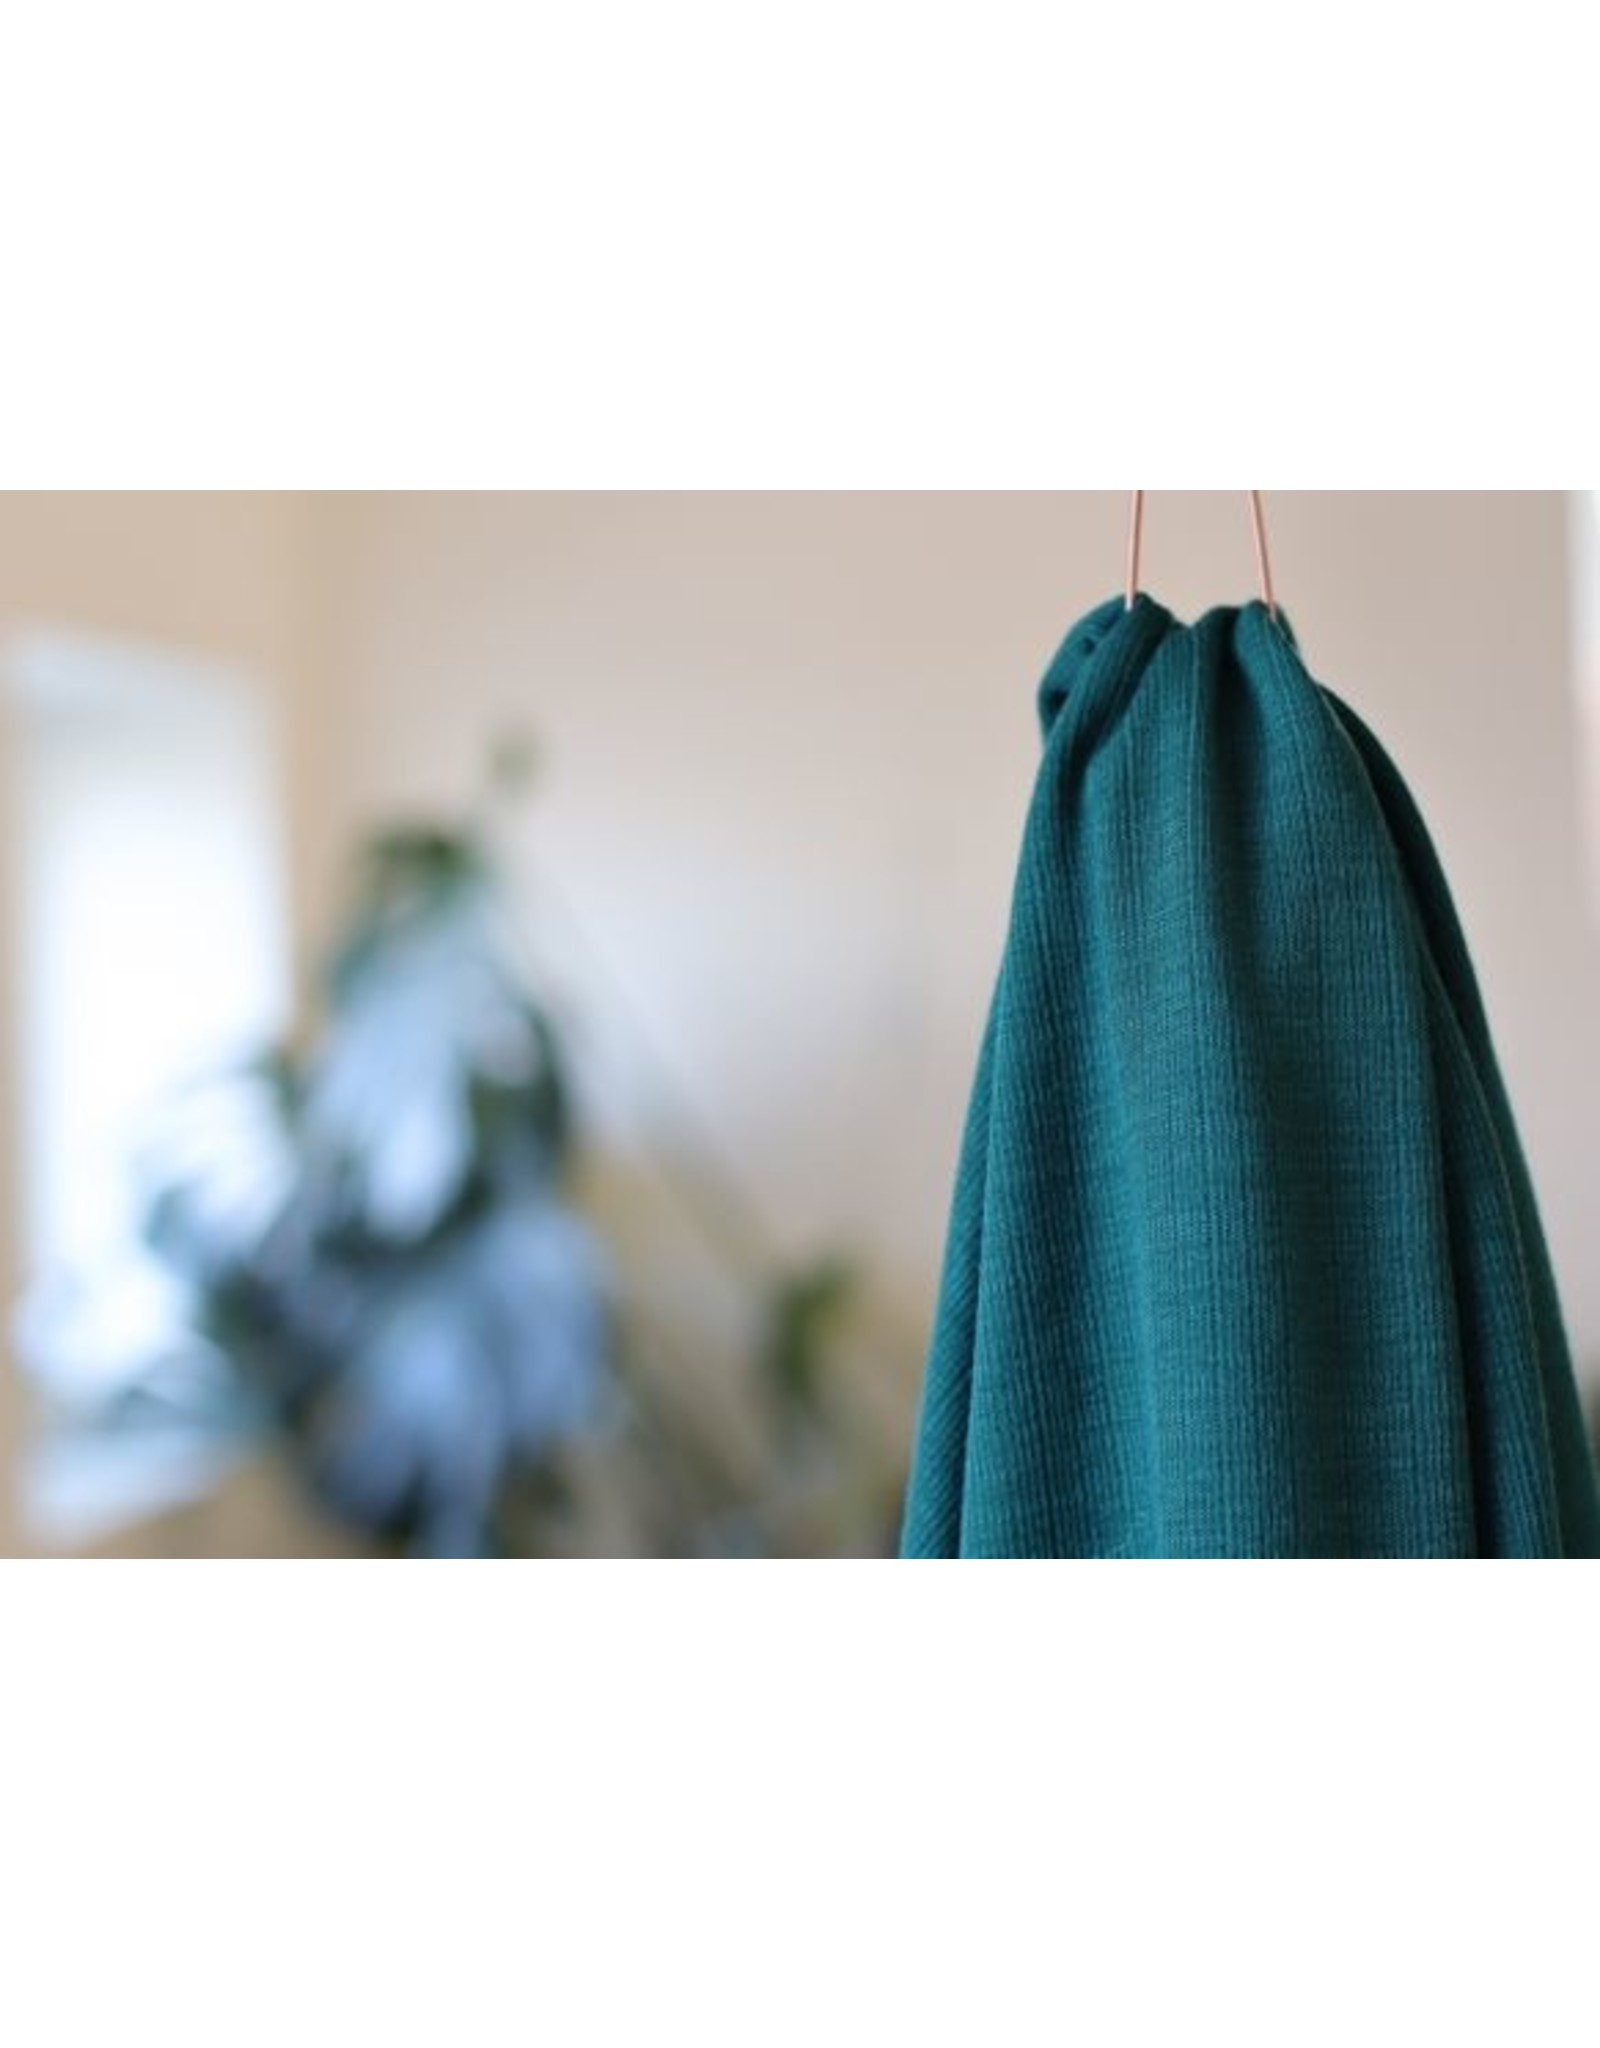 Mind The Maker Viscose Trim Knit - Tropic Green COUPON 80 cm